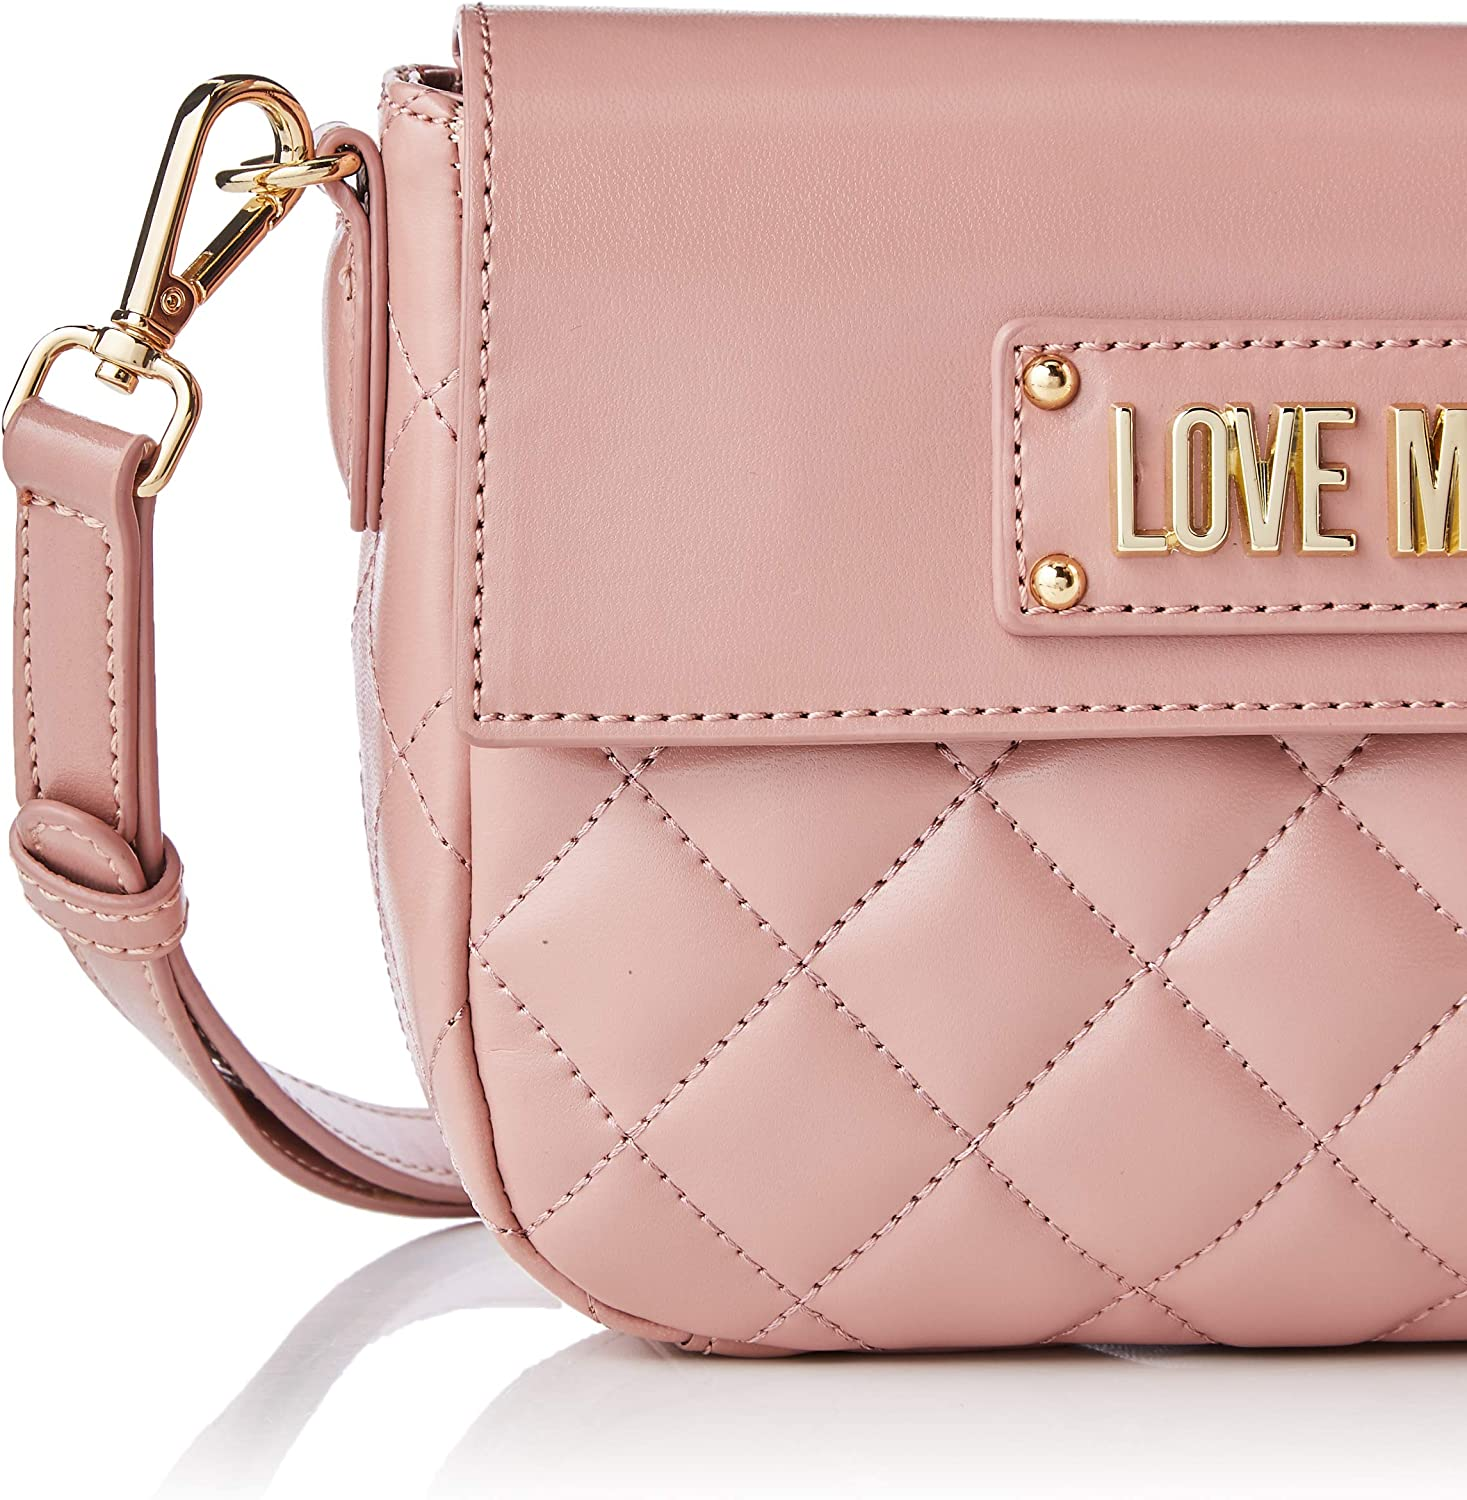 Love Moschino Borsa Quilted Nappa PU, Sac Messager Femme, Noir, 16x23x6 Centimeters (W x H x L) Rose (Cipria)